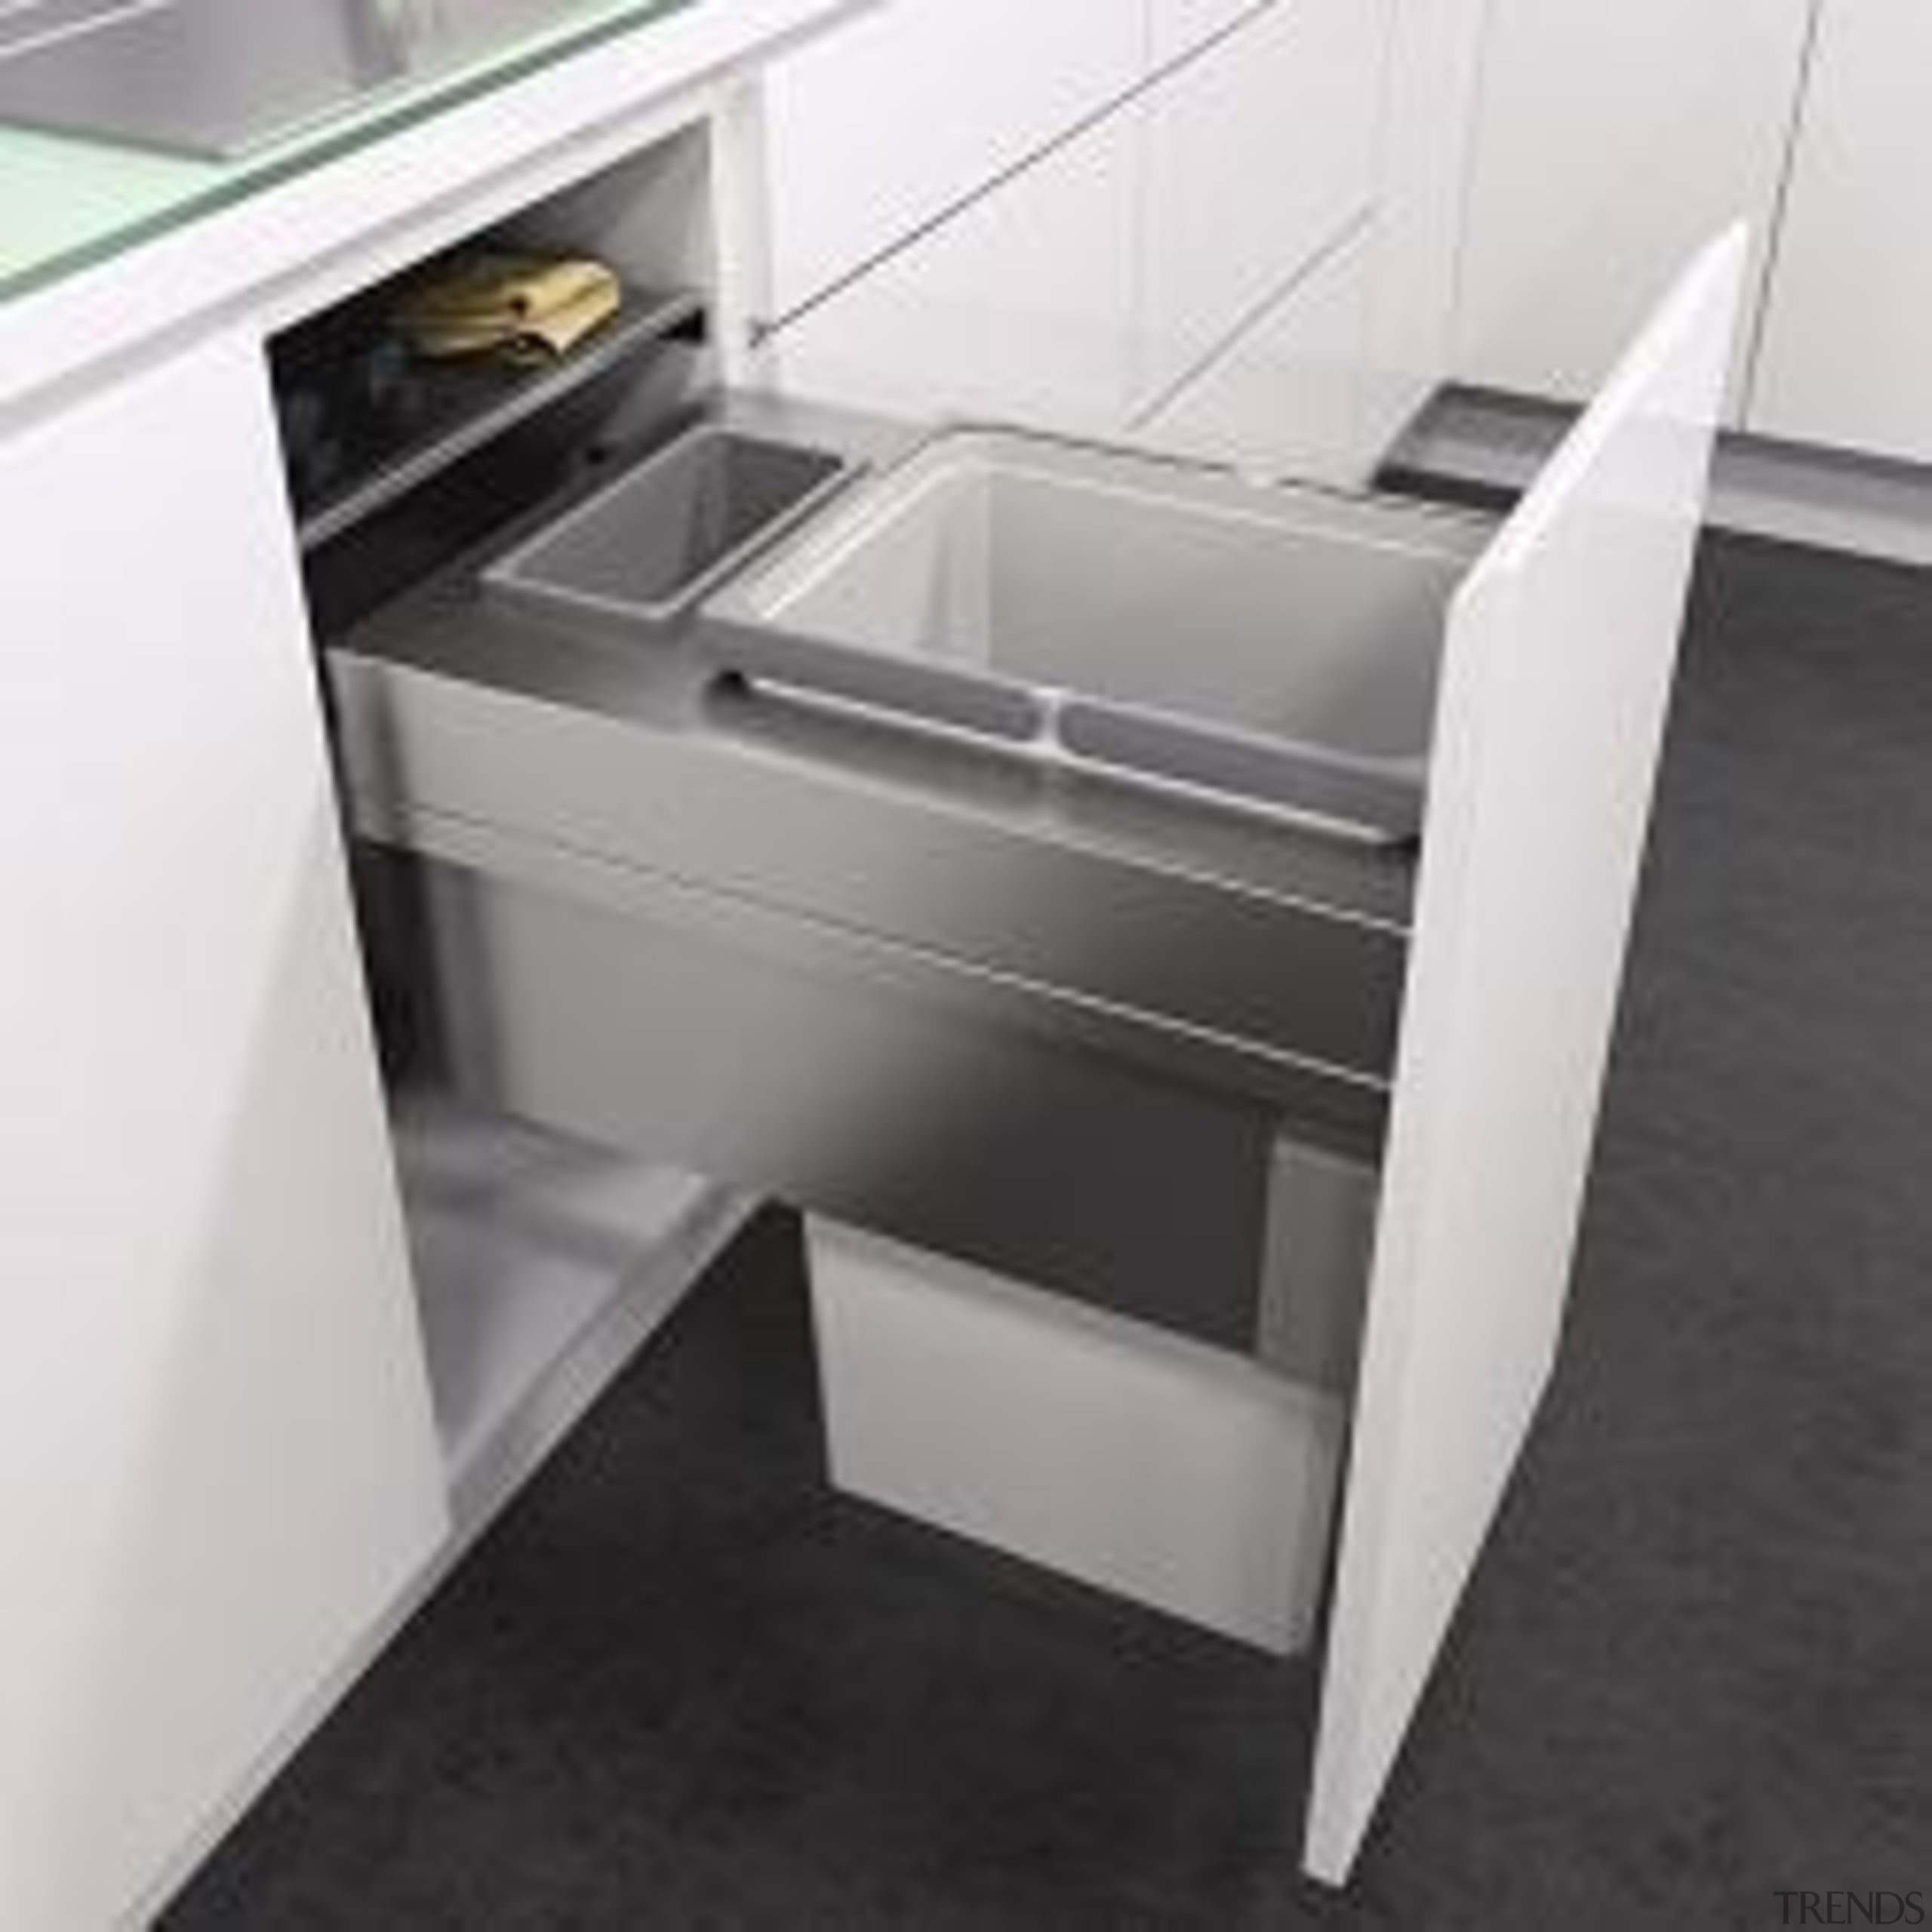 Space saving designIntegrated self close and soft closeAdditional angle, desk, drawer, floor, furniture, plumbing fixture, product, sink, tap, white, black